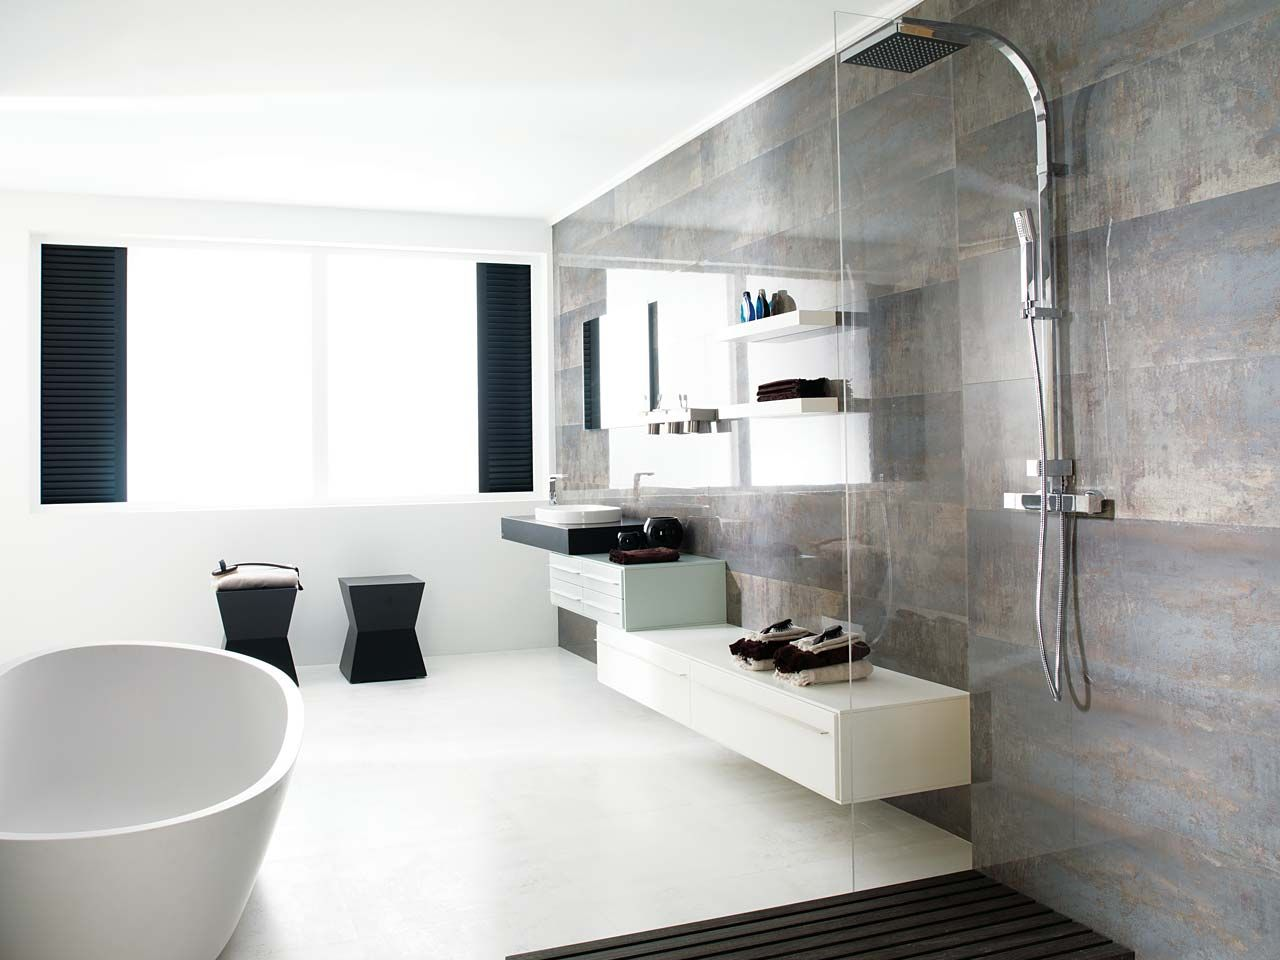 Porcelanosa Floor Tiles 81 Best Porcelanosa Images On Pinterest  Bathroom Ideas Tile